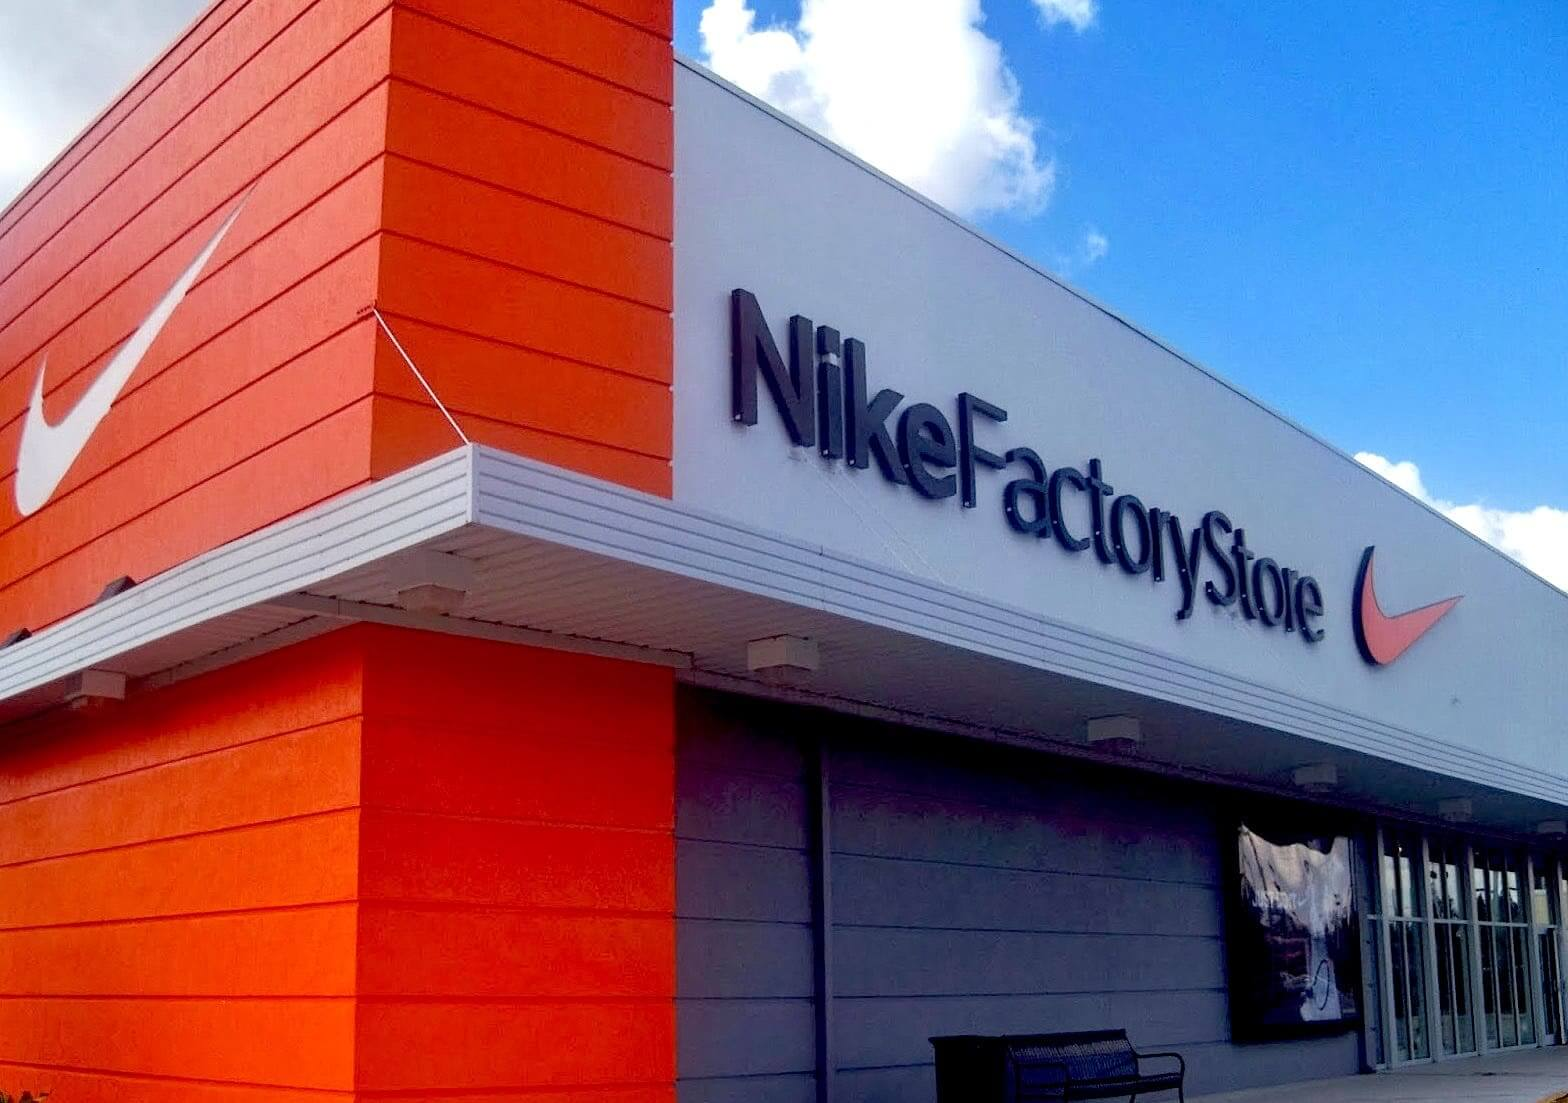 Nike Outlet locations in Melbourne, FL Below is a list of Nike Outlet mall/outlet store locations in Melbourne, Florida - including store address, hours and phone numbers. There are 11 Nike Outlet mall stores in Florida, with 3 locations in or near Melbourne (within miles).